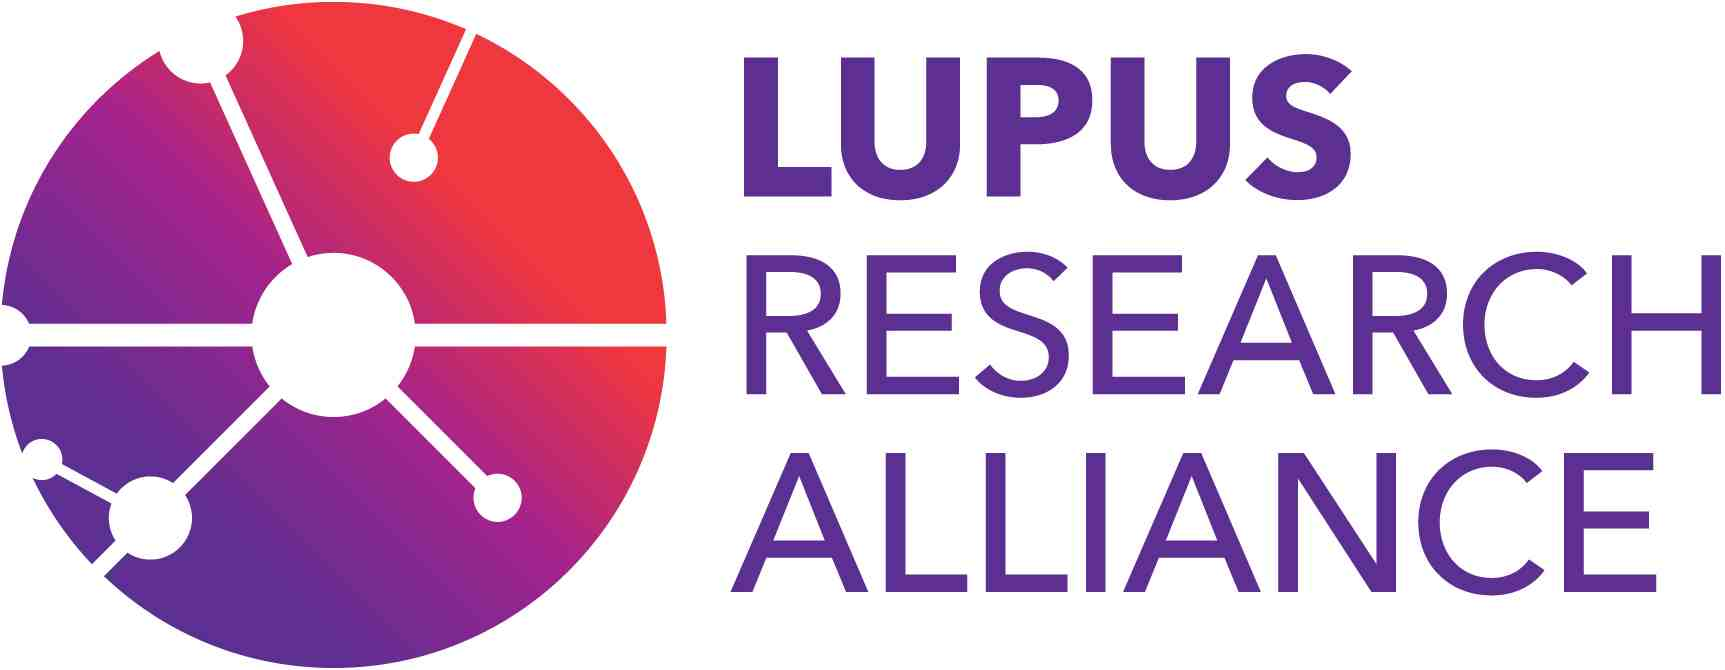 Alliance for Lupus Research